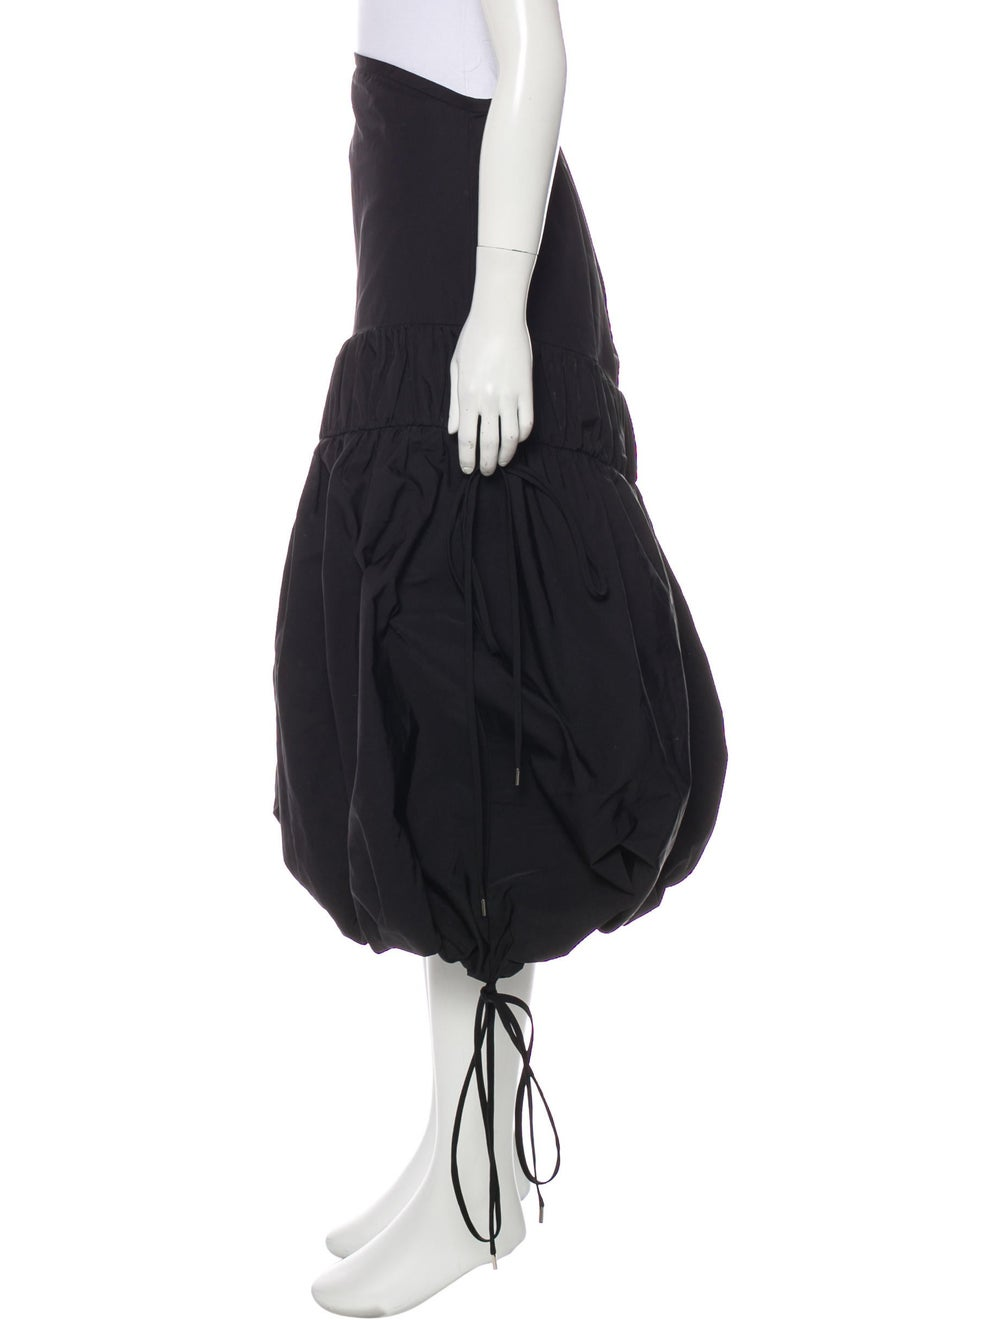 Ellery Midi Length Skirt Black - image 2